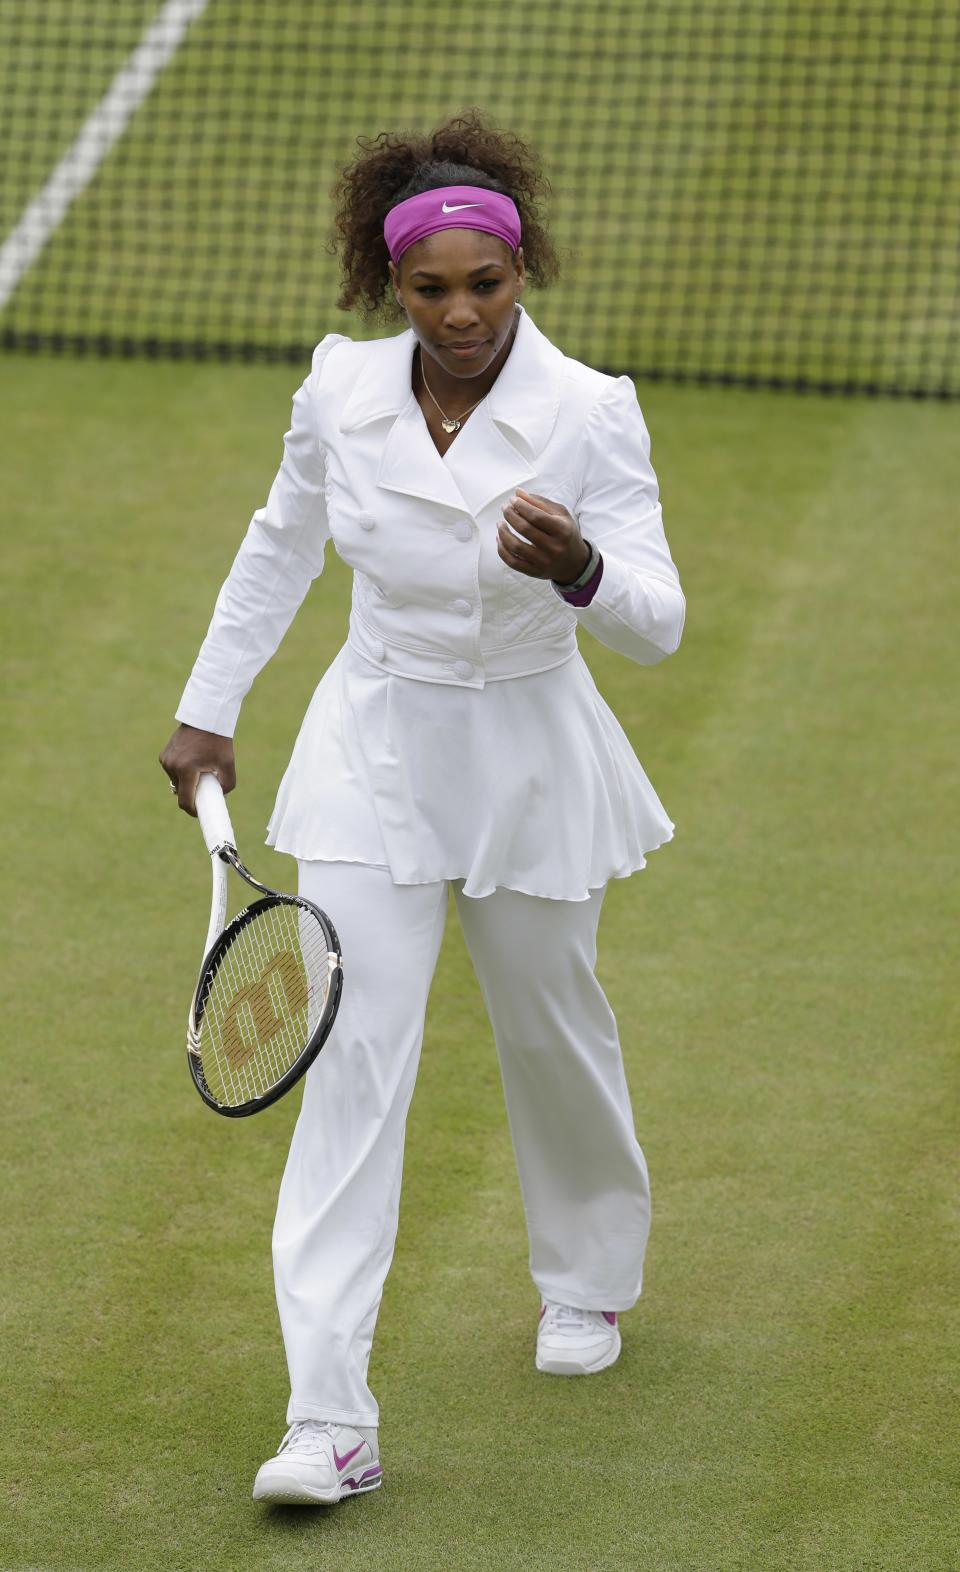 Serena Williams of the United States prepares for a fourth round women's singles match against Yaroslava Shvedova of Kazakhstan at the All England Lawn Tennis Championships at Wimbledon, England, Monday, July 2, 2012. (AP Photo/Kirsty Wigglesworth)